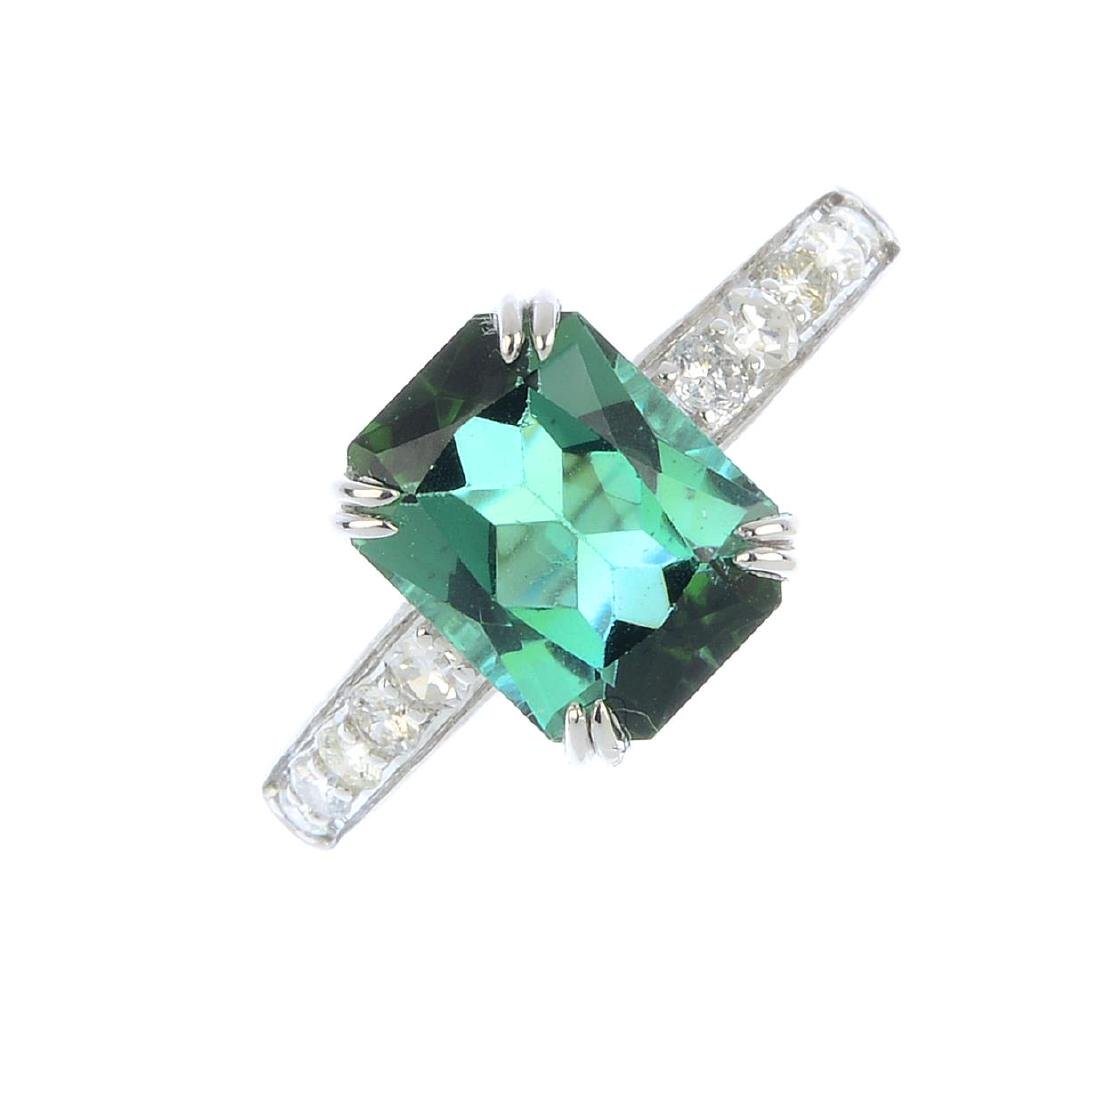 A tourmaline and diamond ring. The rectangular-shape